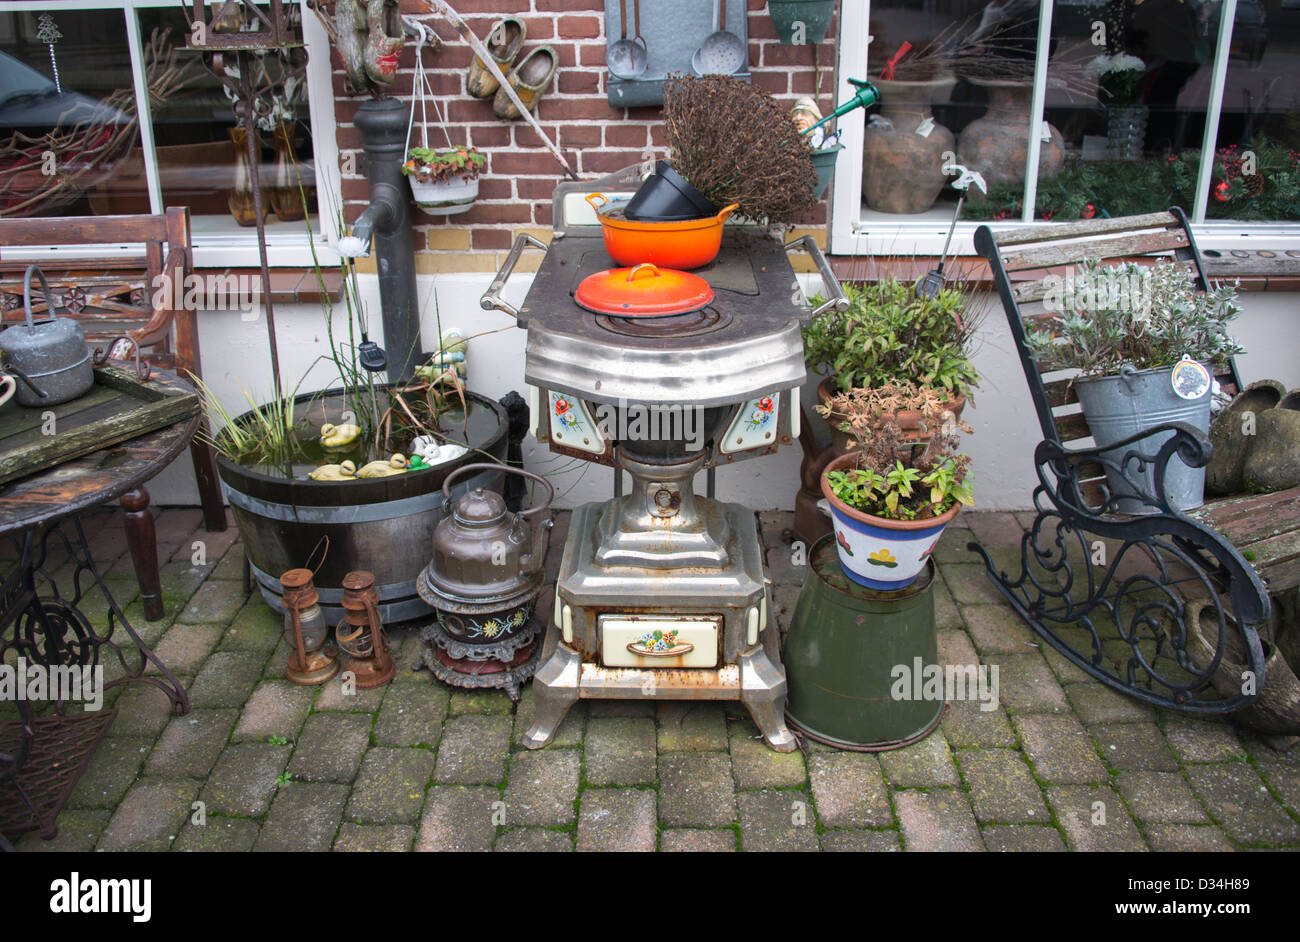 garden in holland with old tools and equipment - Stock Image